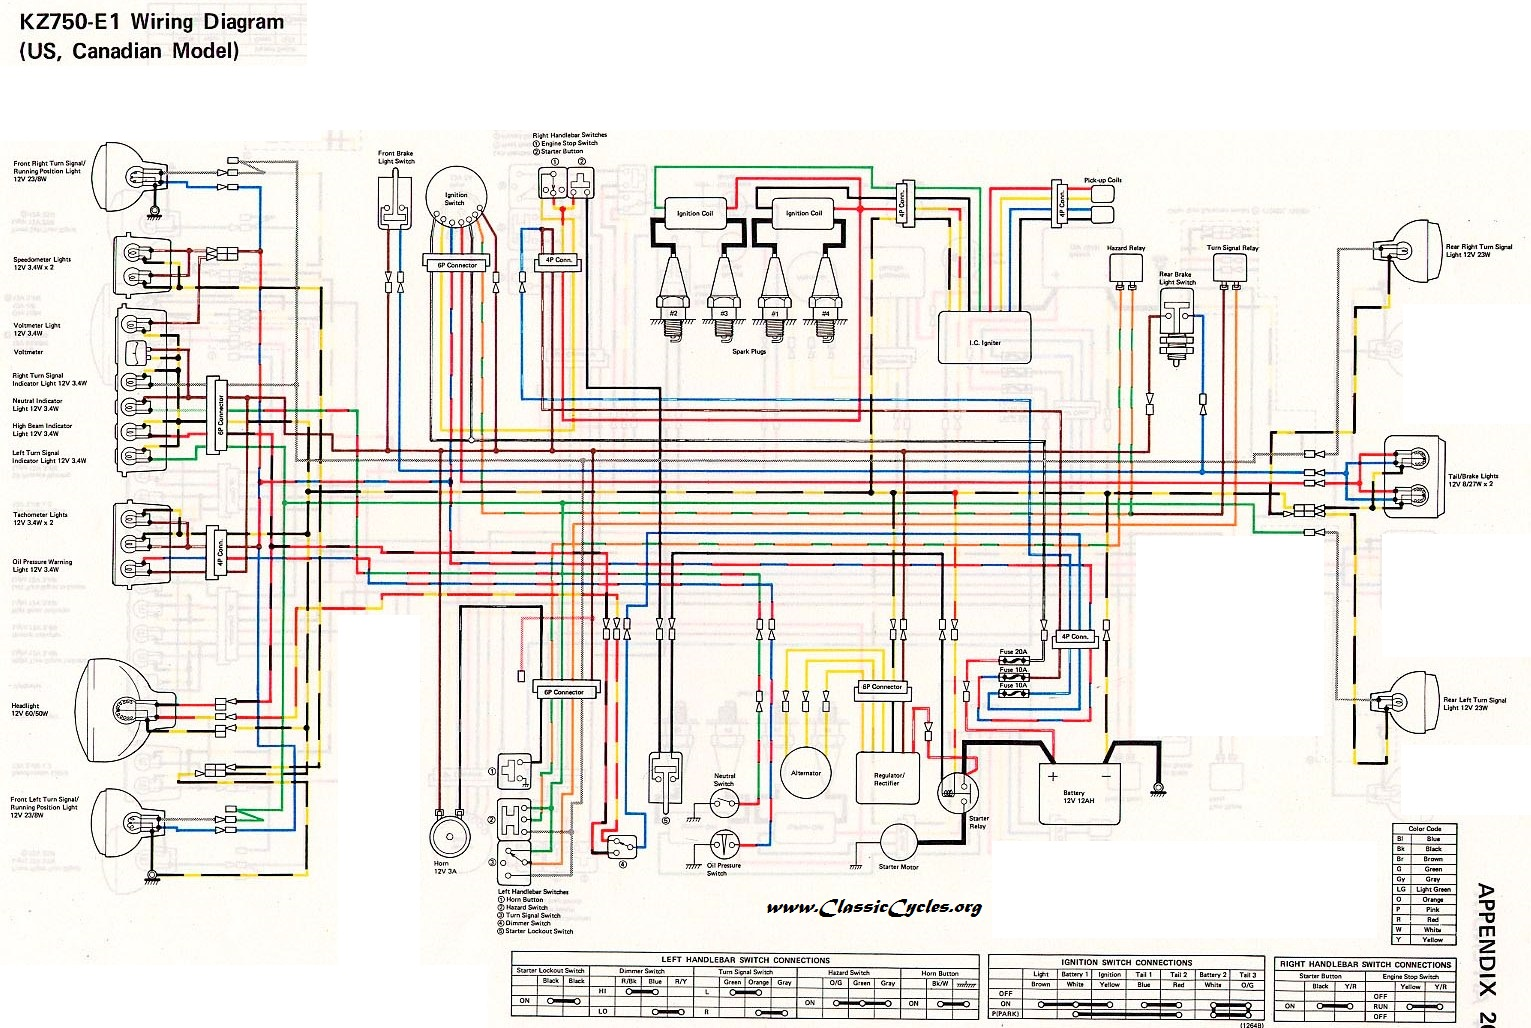 medium resolution of 2002 kawasaki kfx400 wiring diagram